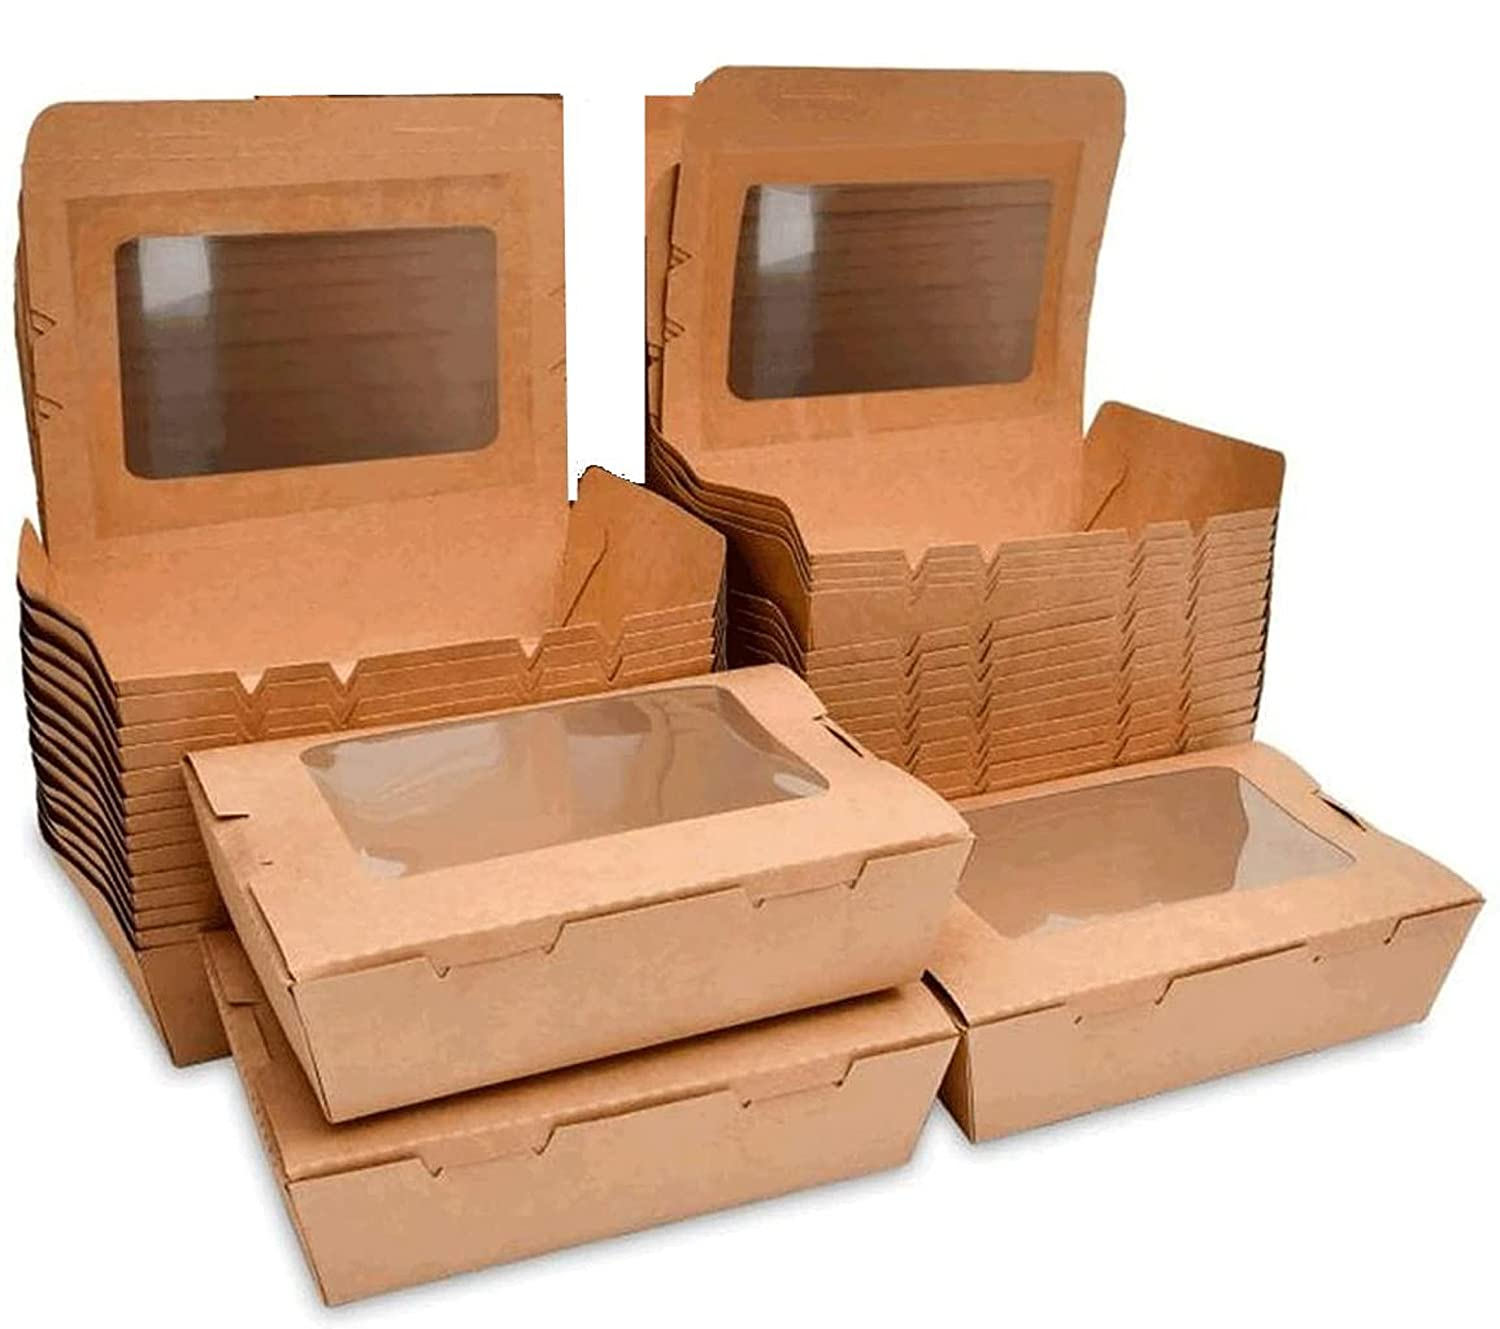 Take Out Food Containers 40 oz (50 Pack) Kraft Brown Food Boxes,